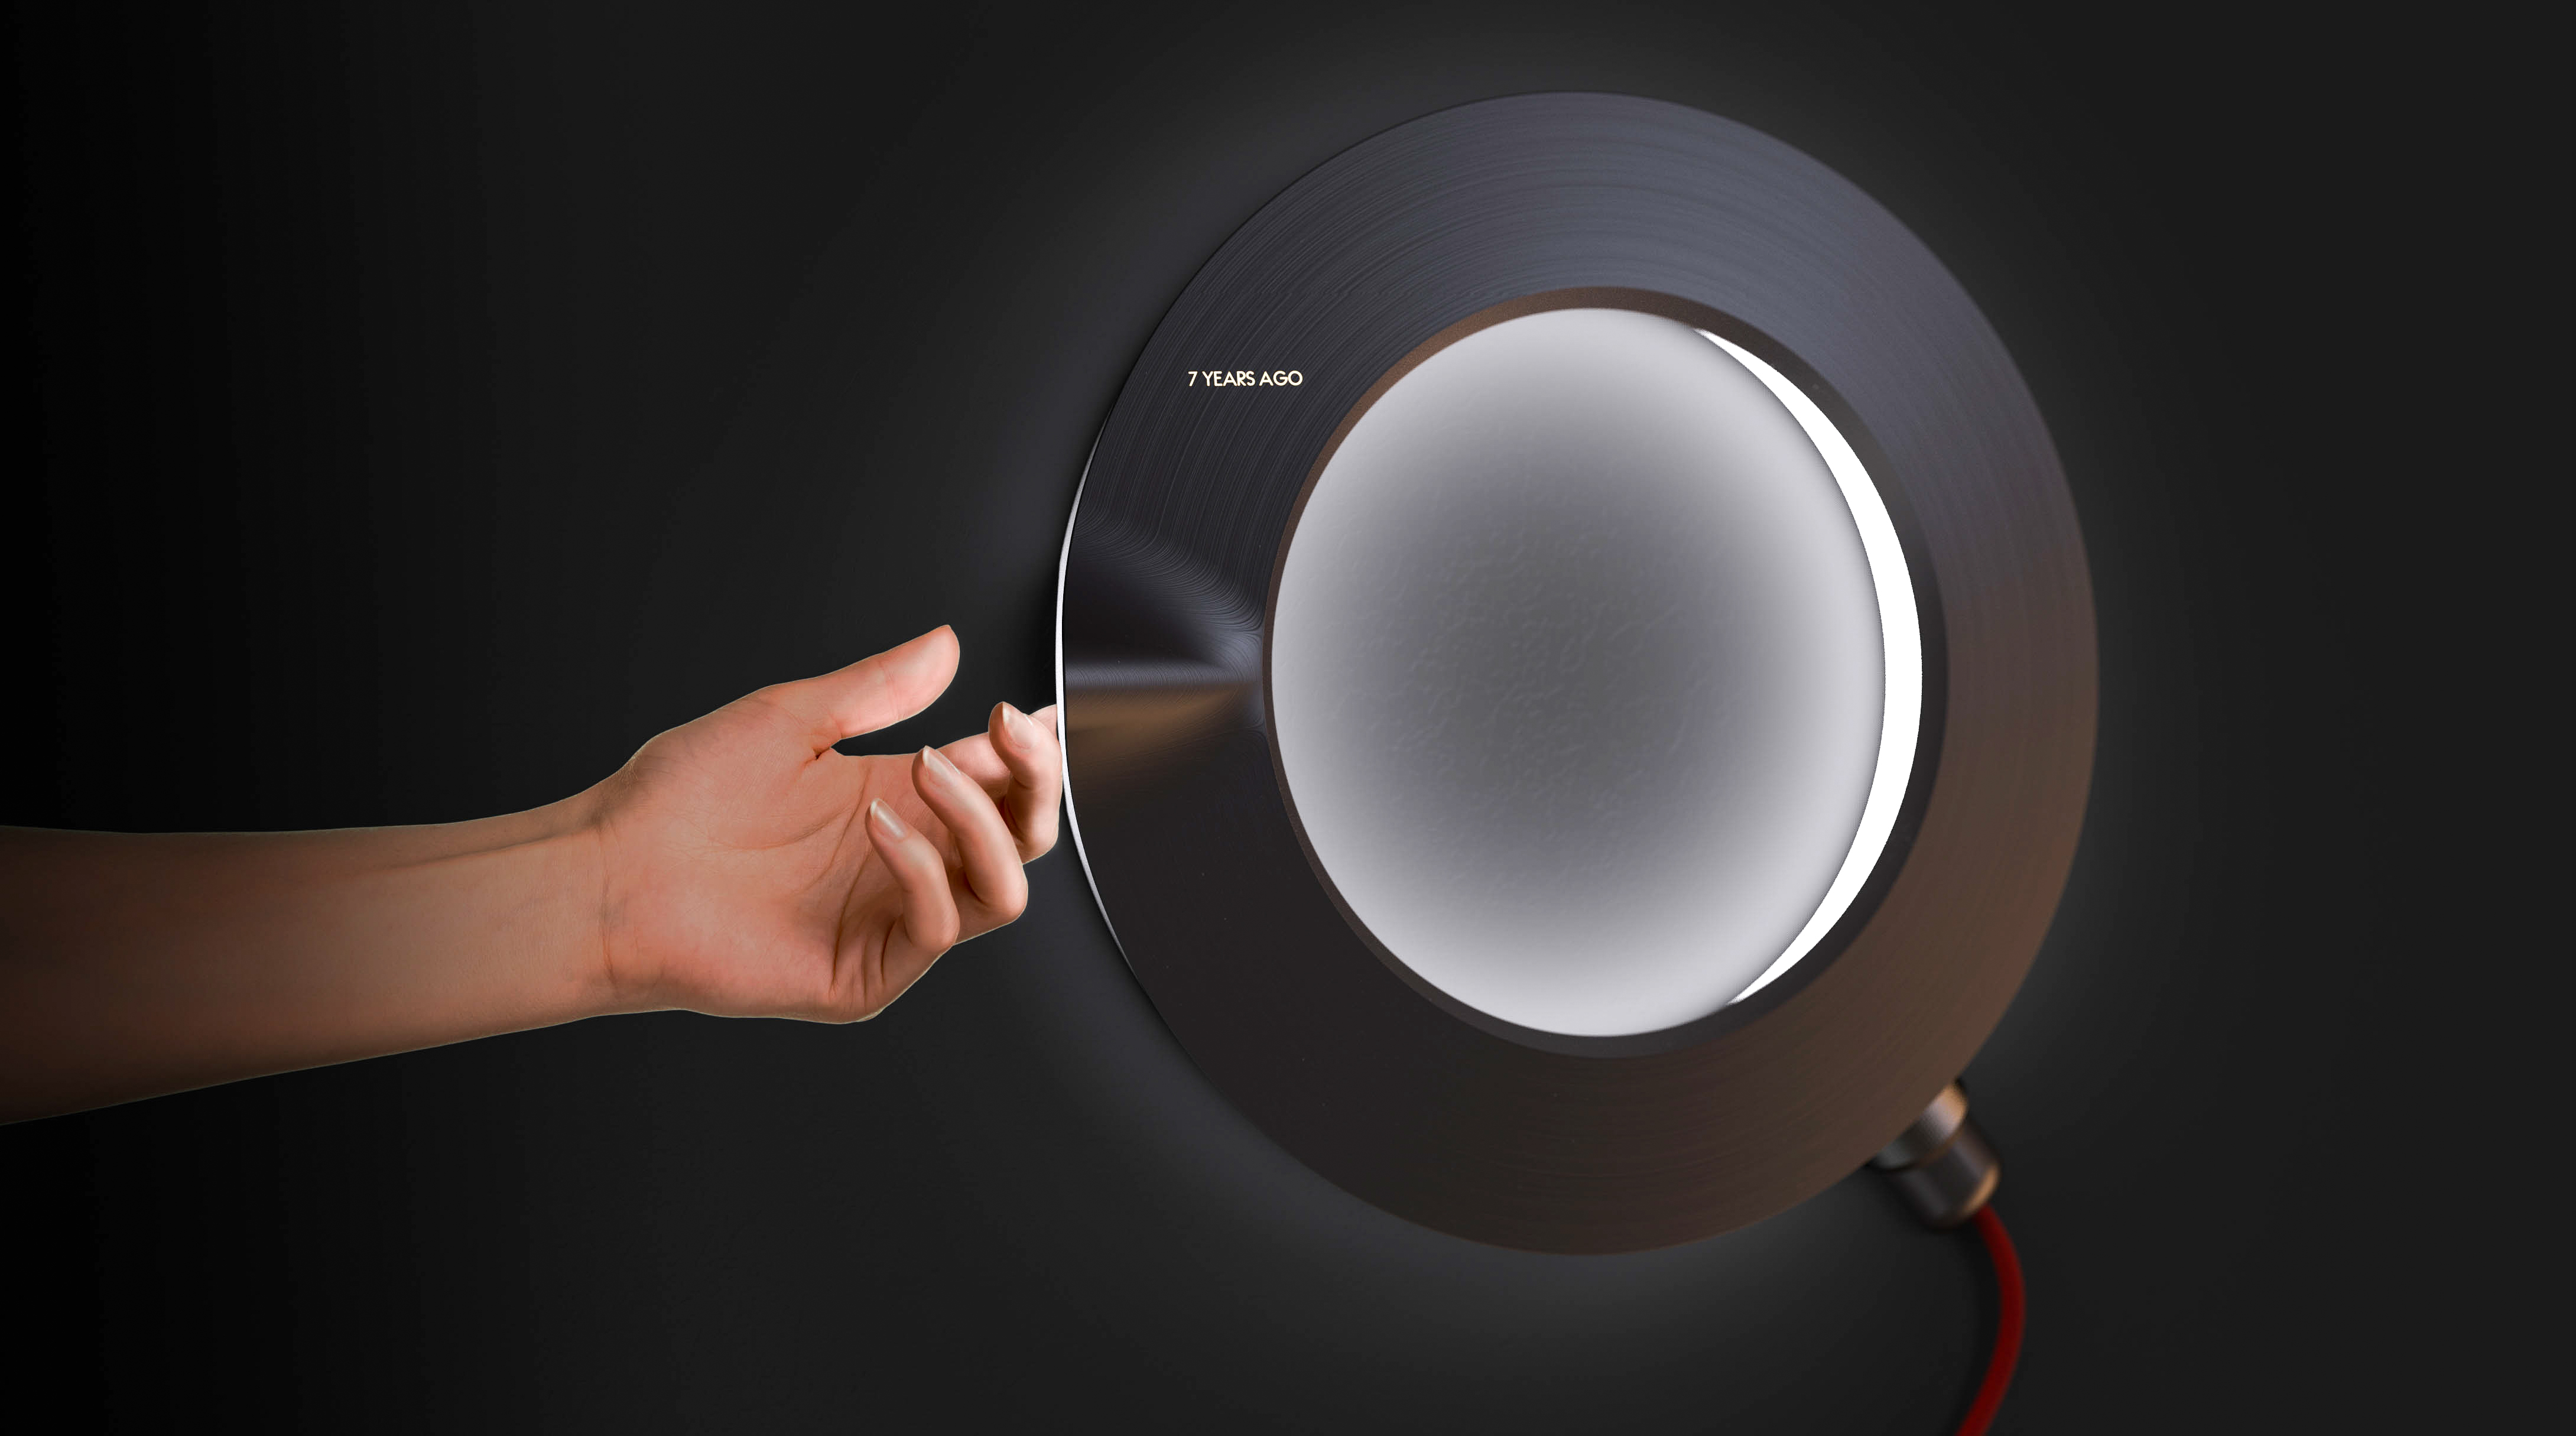 Rotating Datelite to reveal the hidden display is the most physical interaction the average user will have with the lamp after its initial setup.